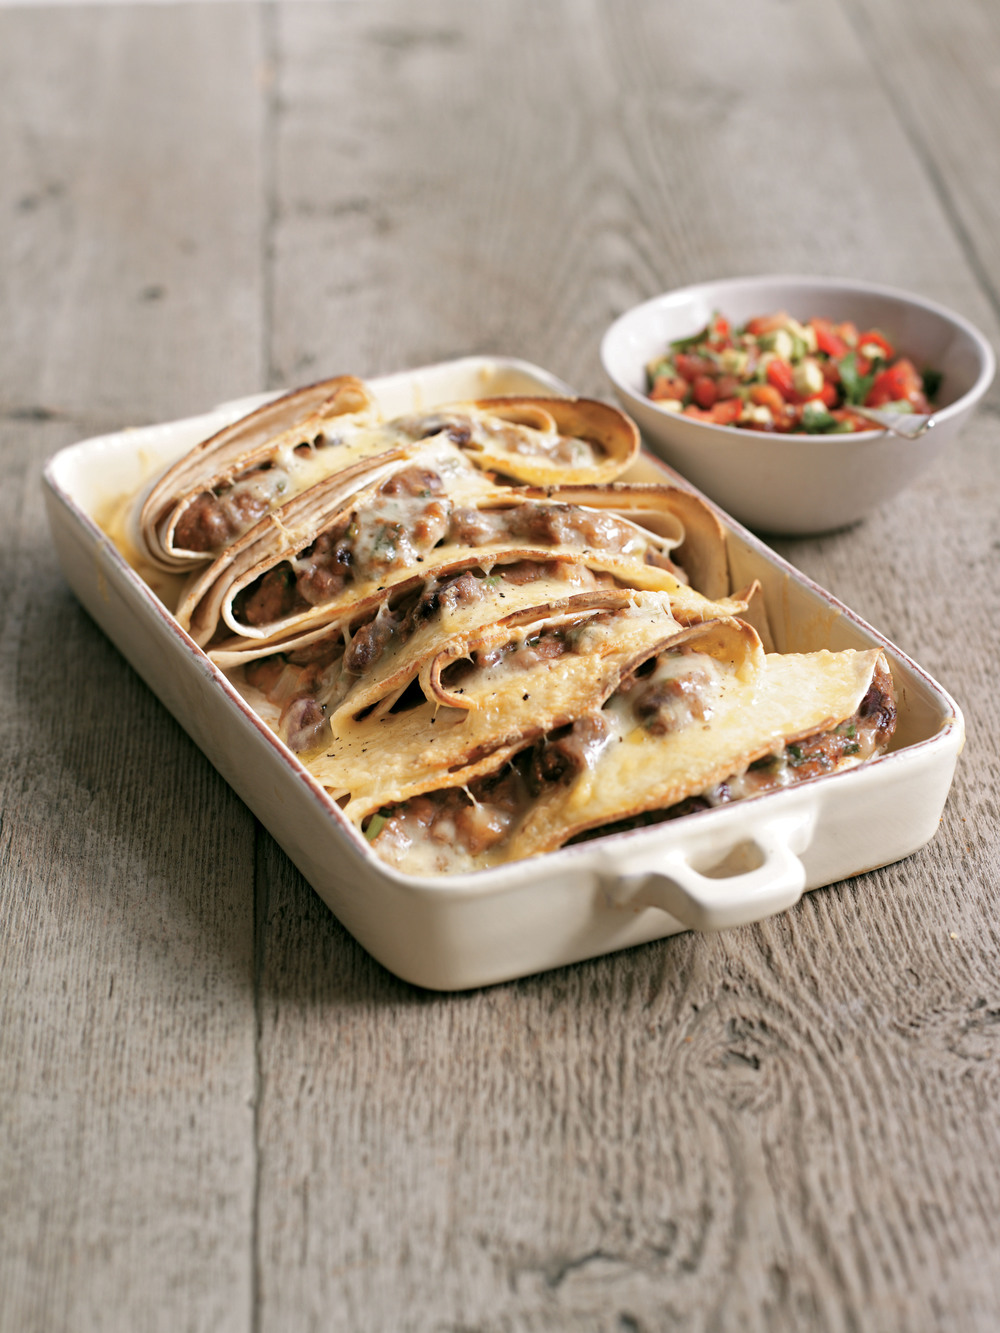 Aol UK | Food | Quesadillas with Refried Beans and Avocado Salsa